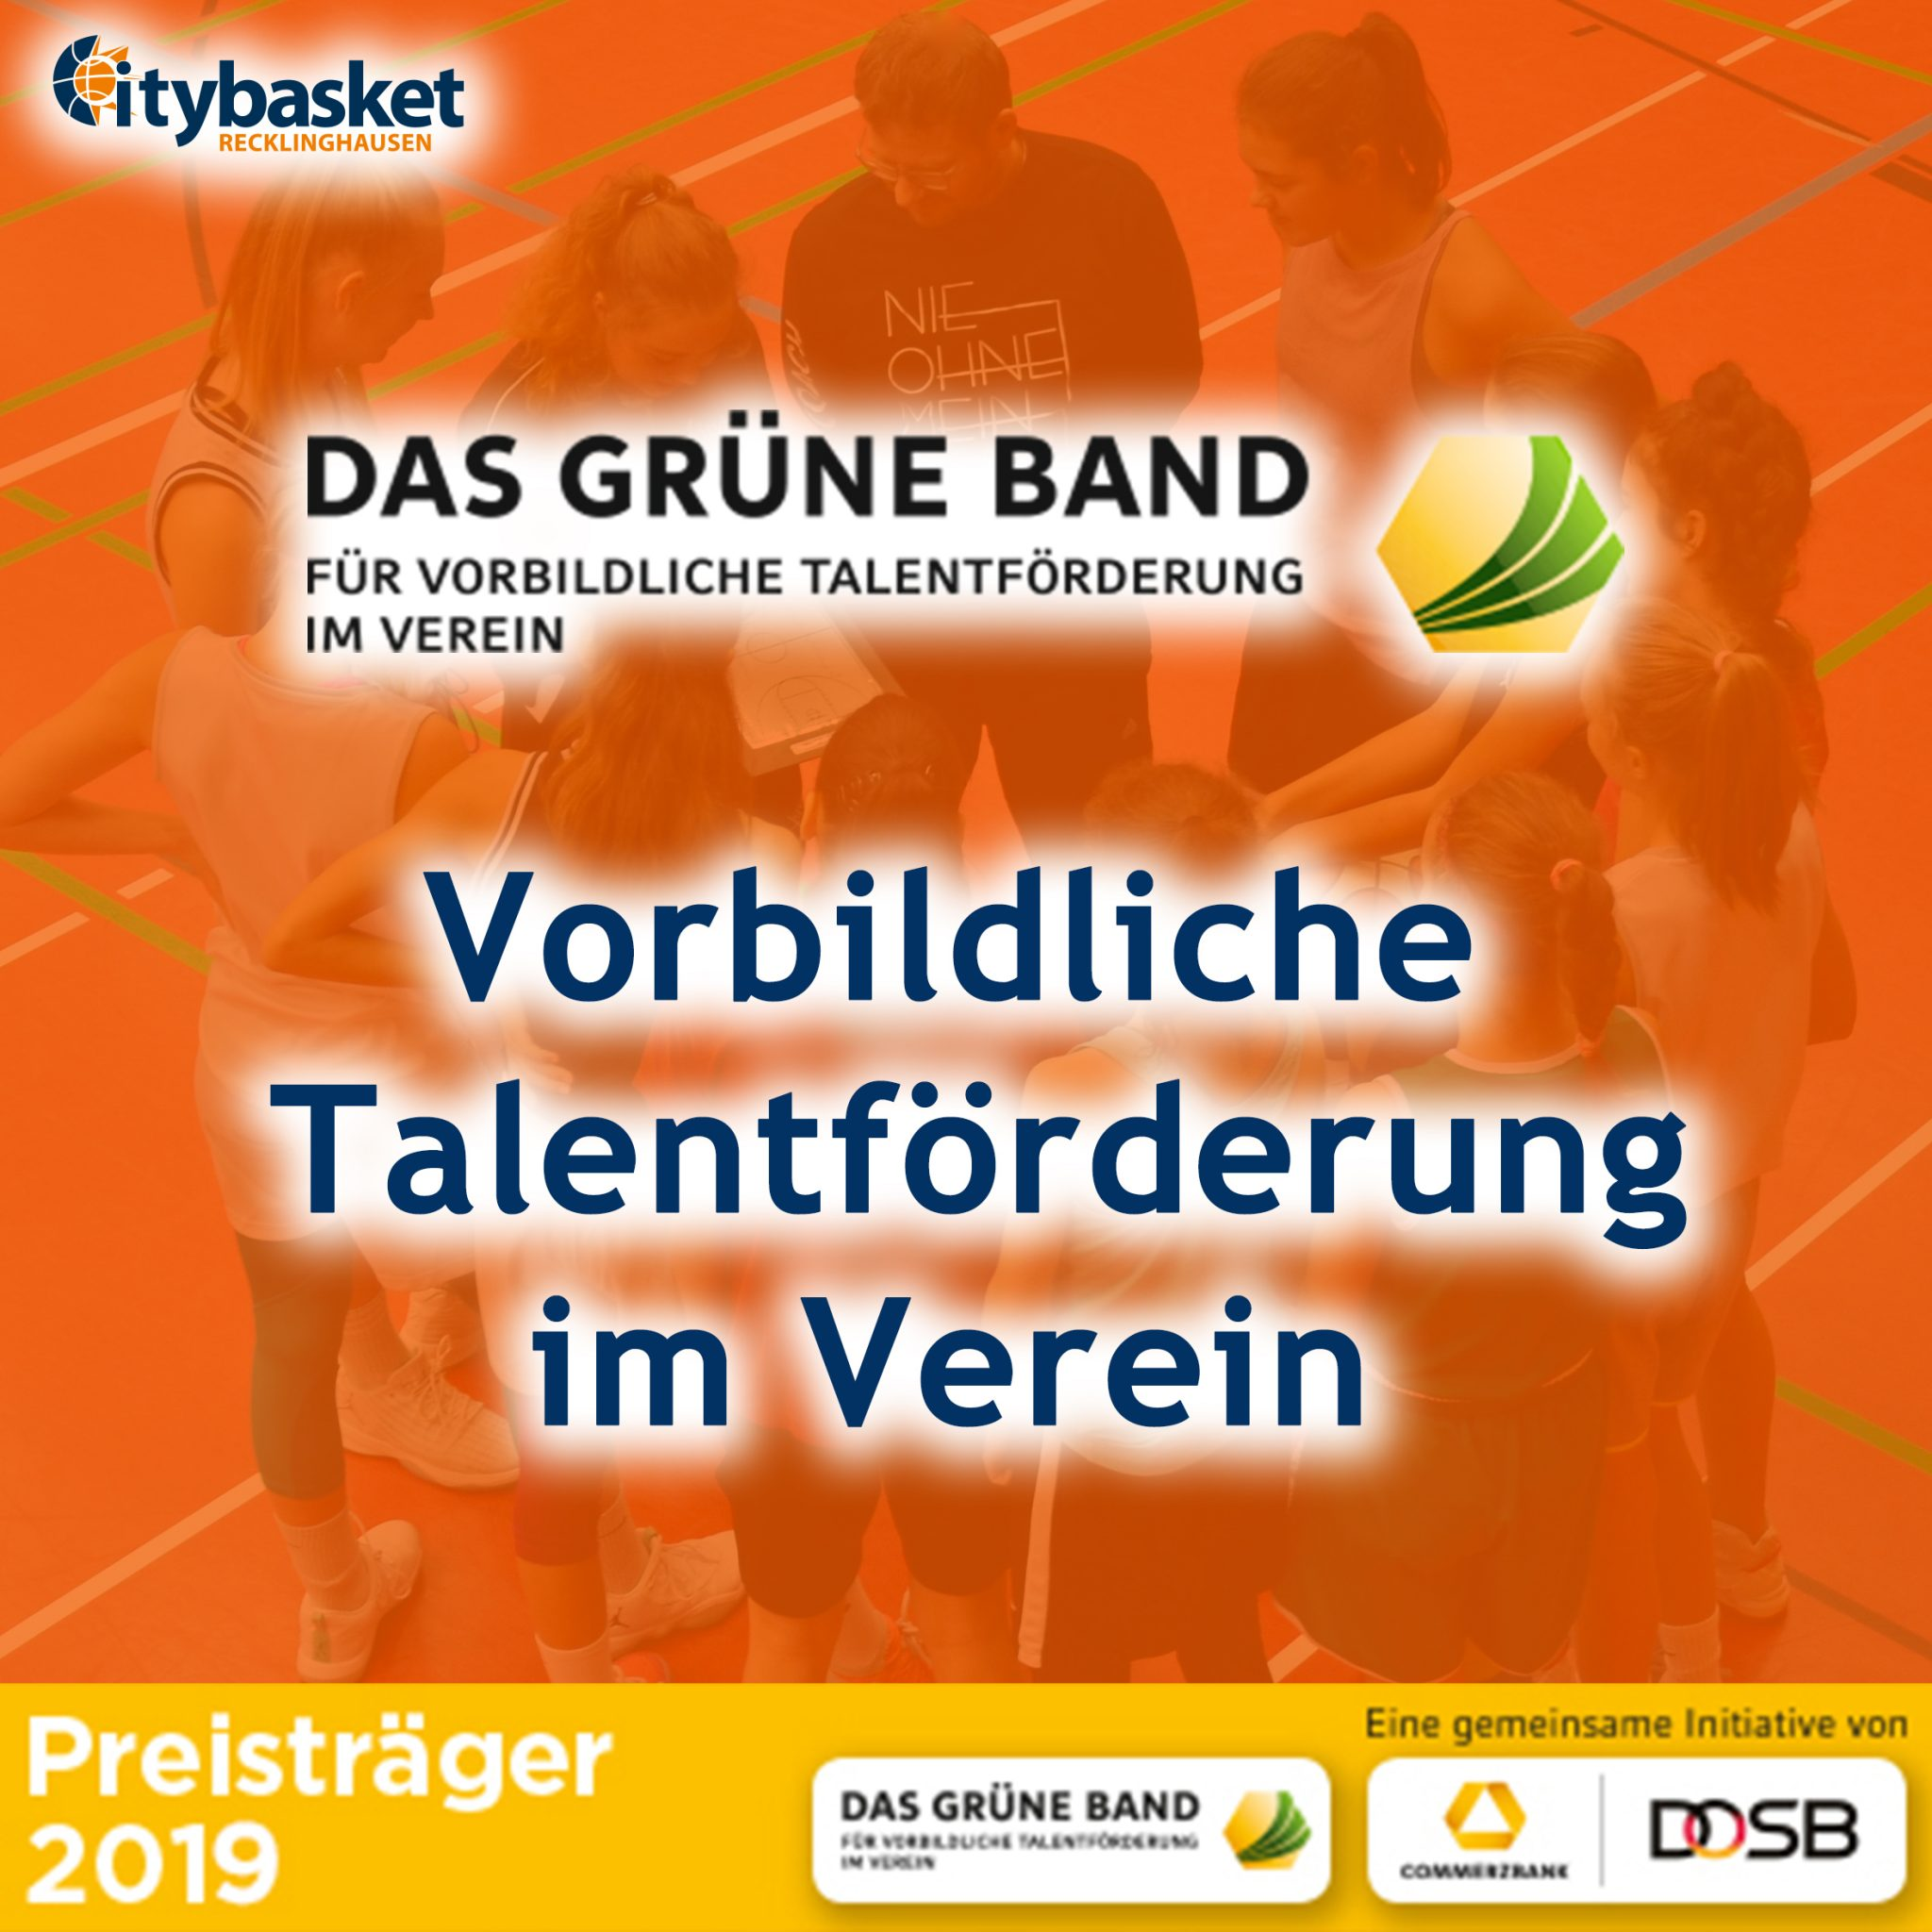 https://i2.wp.com/citybasket.de/wp-content/uploads/2019/07/Gr%C3%BCnes-Band-neu.jpg?fit=2048%2C2048&ssl=1